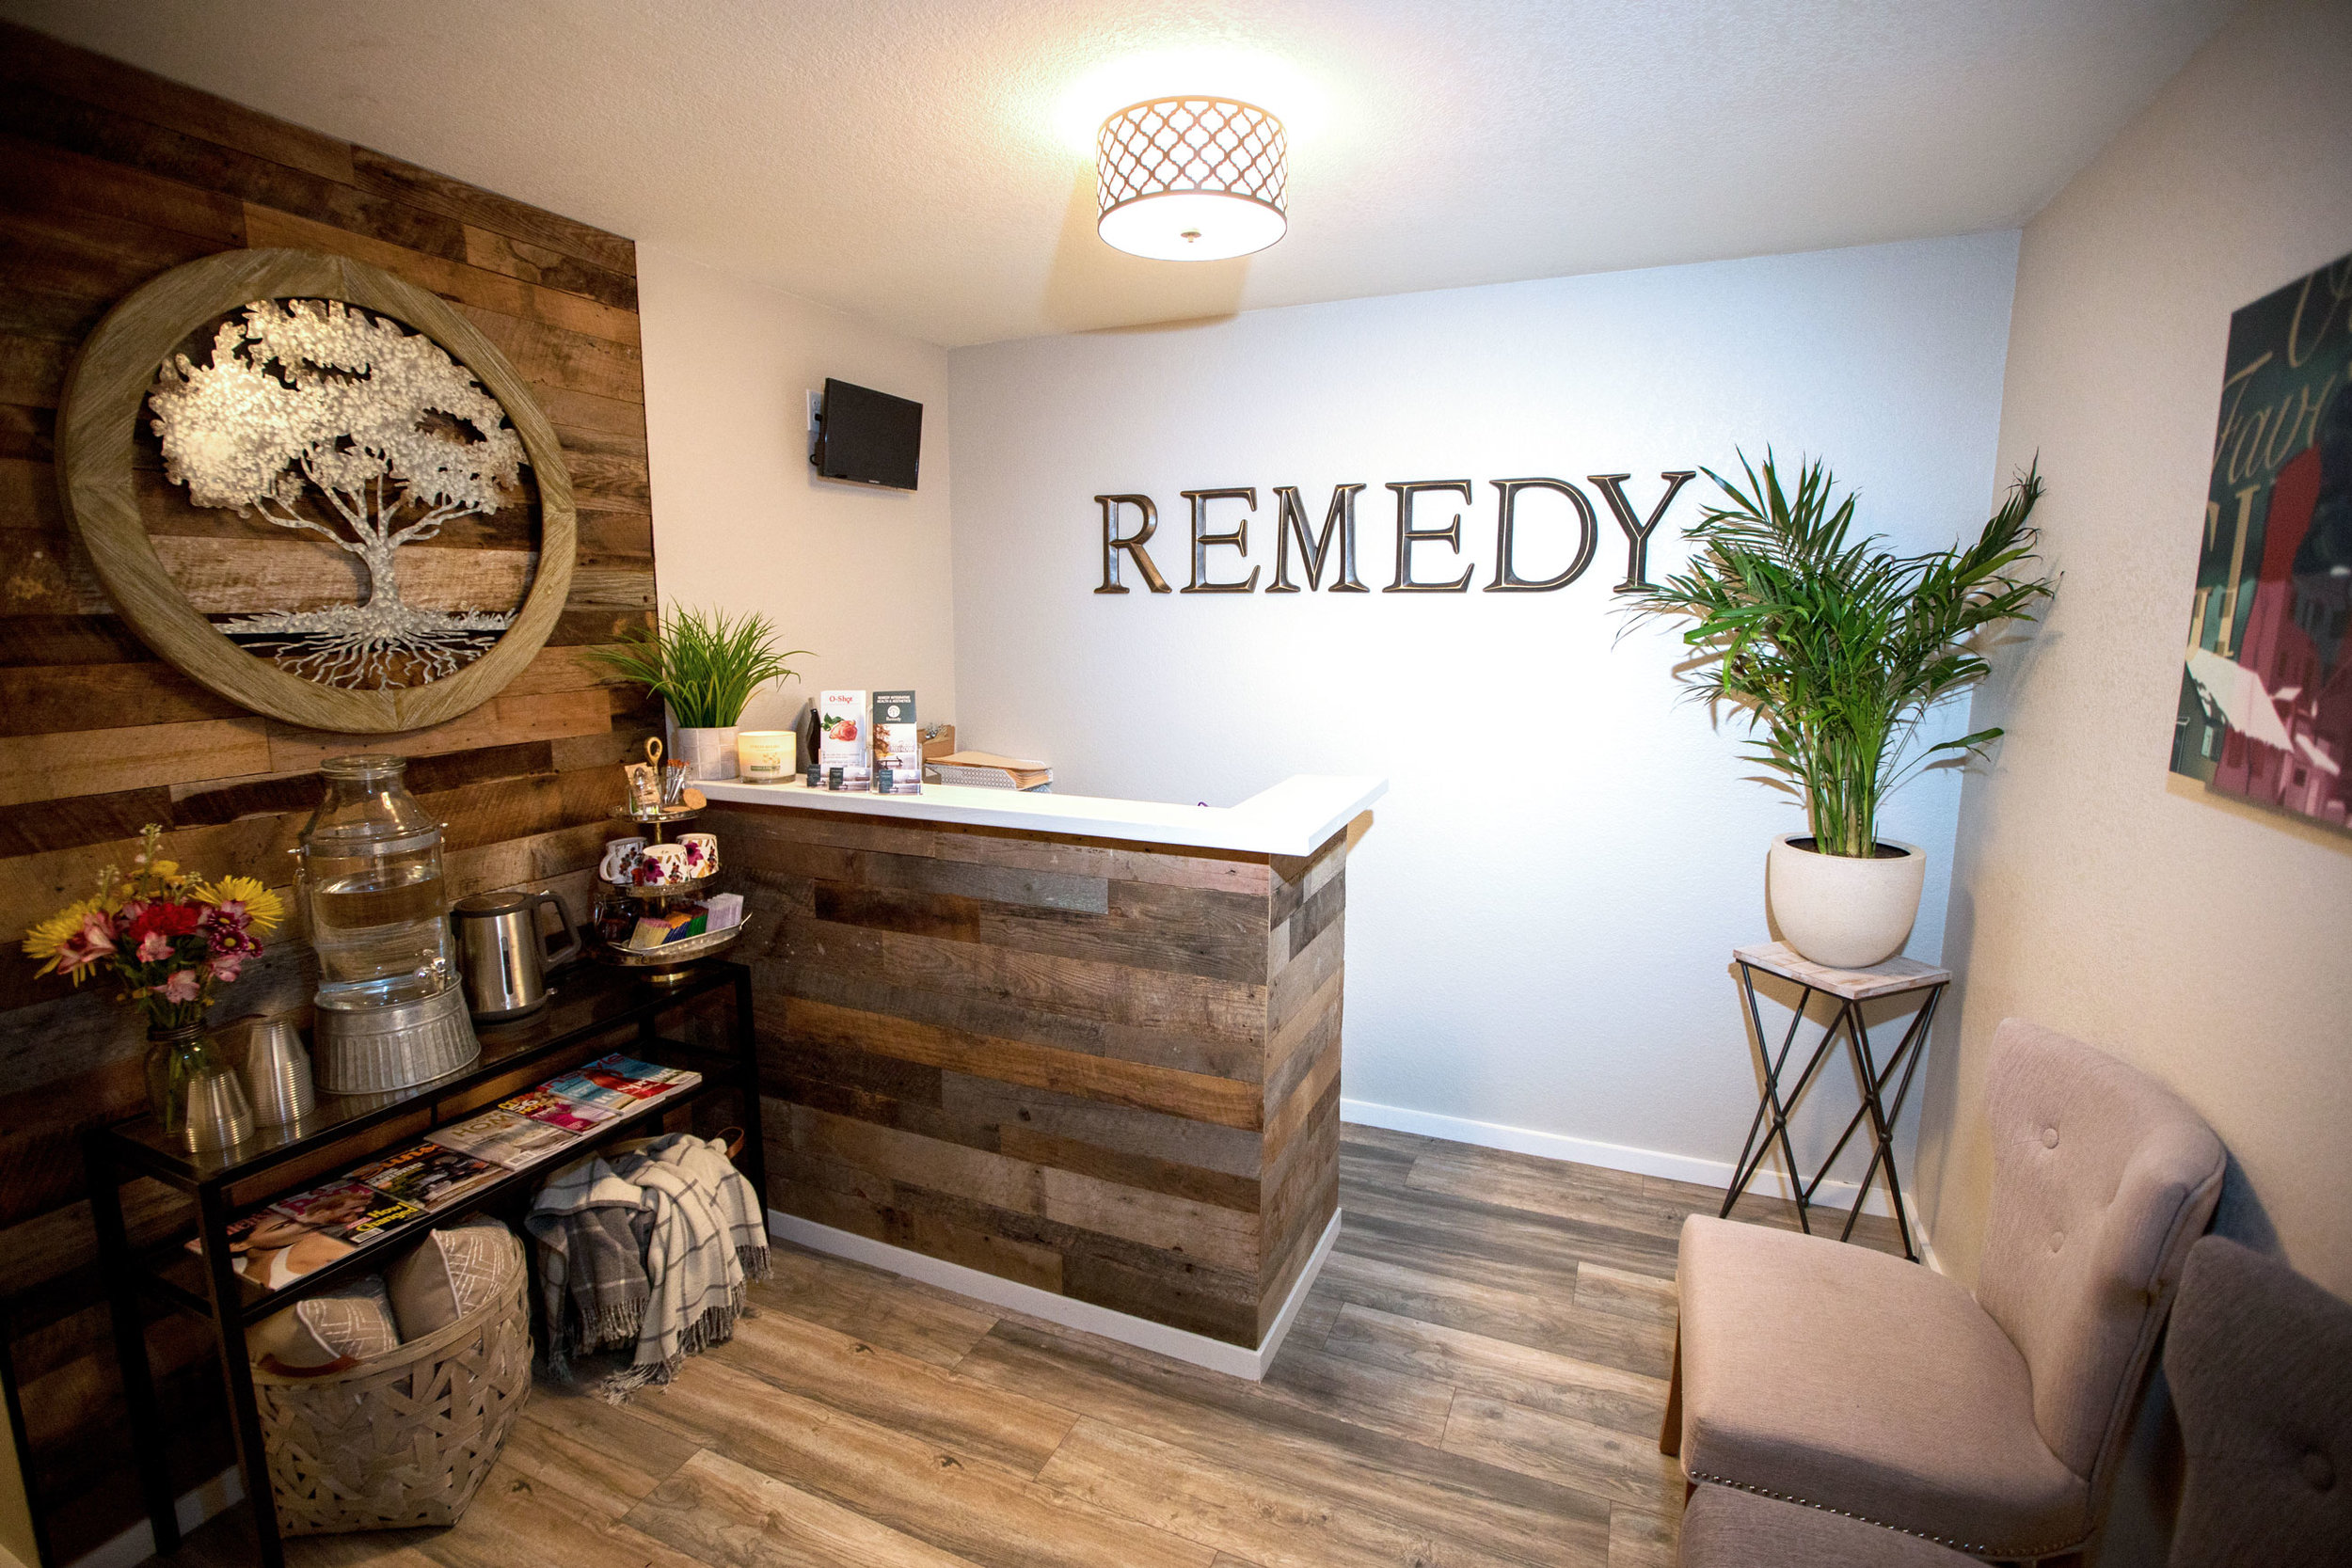 about remedy - Our practice is dedicated to providing safe, affordable, non-toxic and most importantly, highly effective anti-aging and wellness therapies. Feeling great is a big component of looking great.